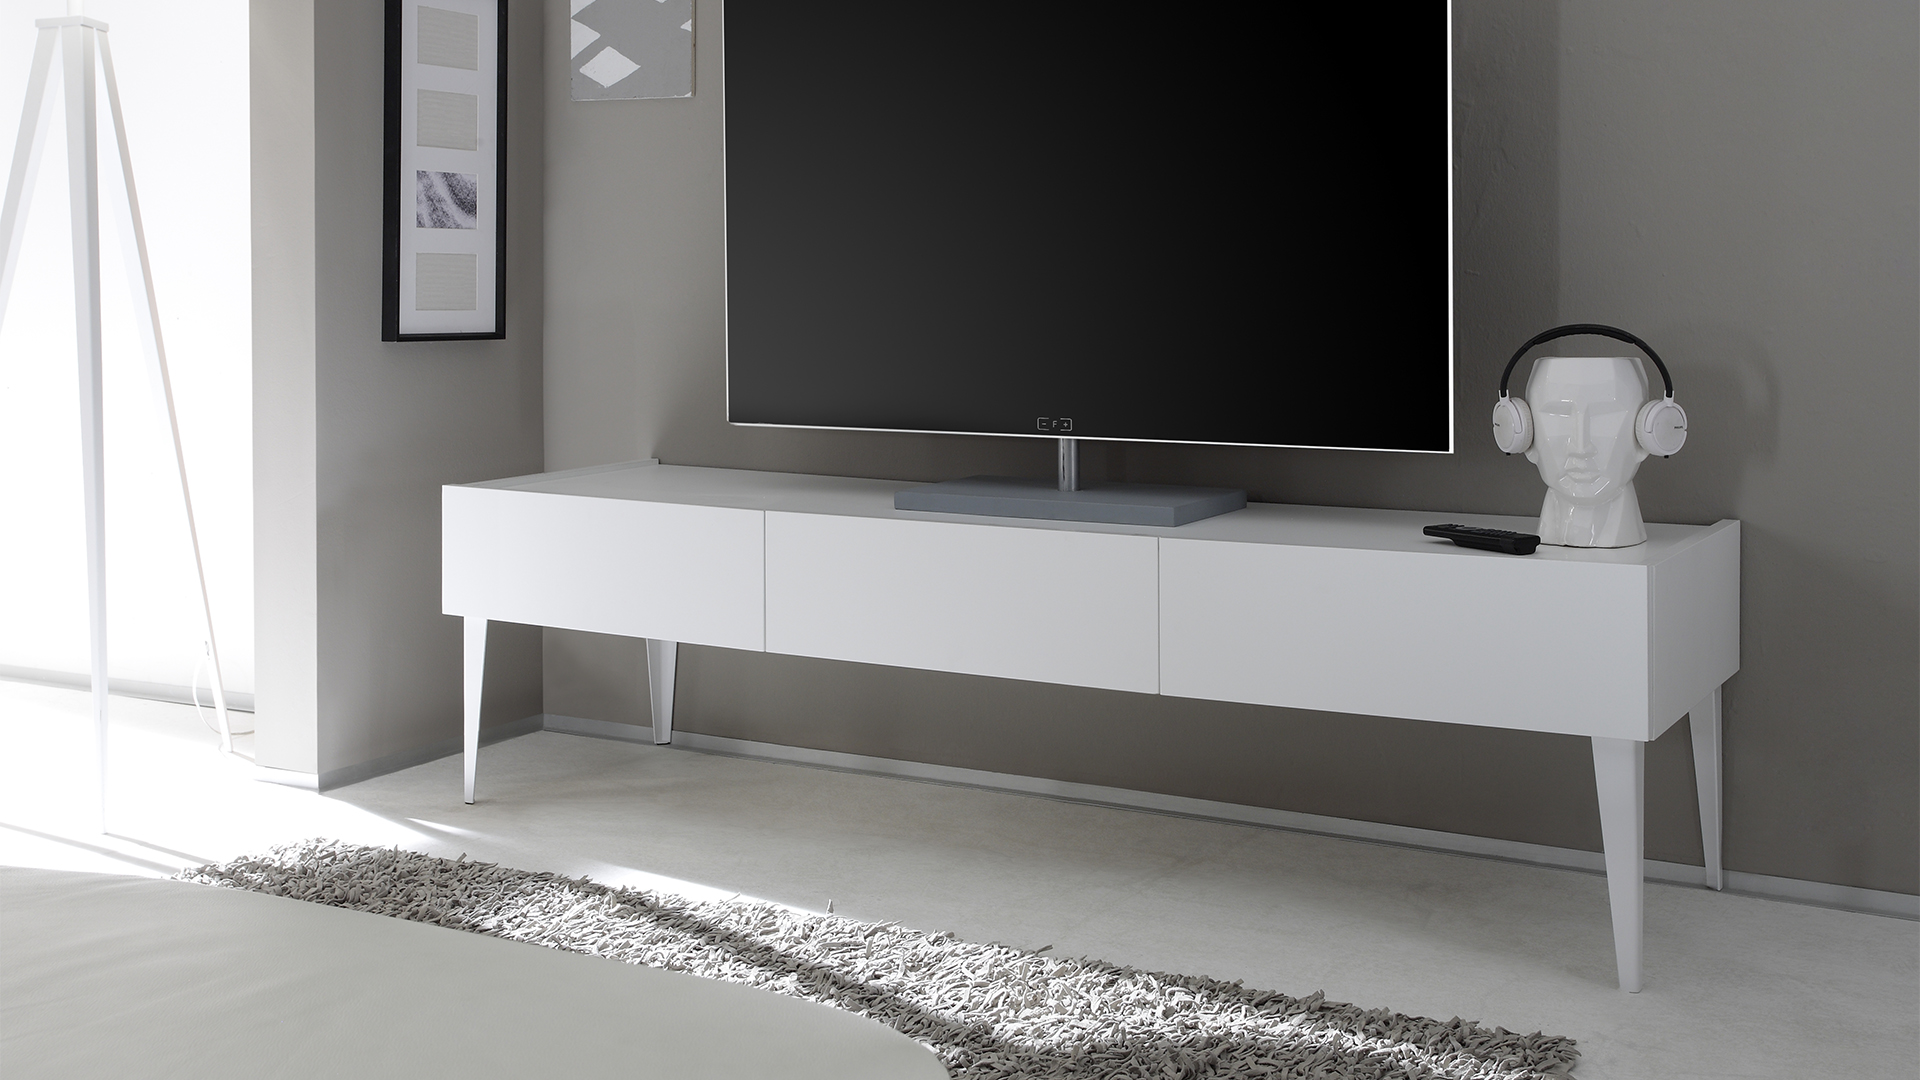 awesome meuble tv noir blanc laqu pas cher meuble tl pivotant meuble tv bas roche with roche. Black Bedroom Furniture Sets. Home Design Ideas